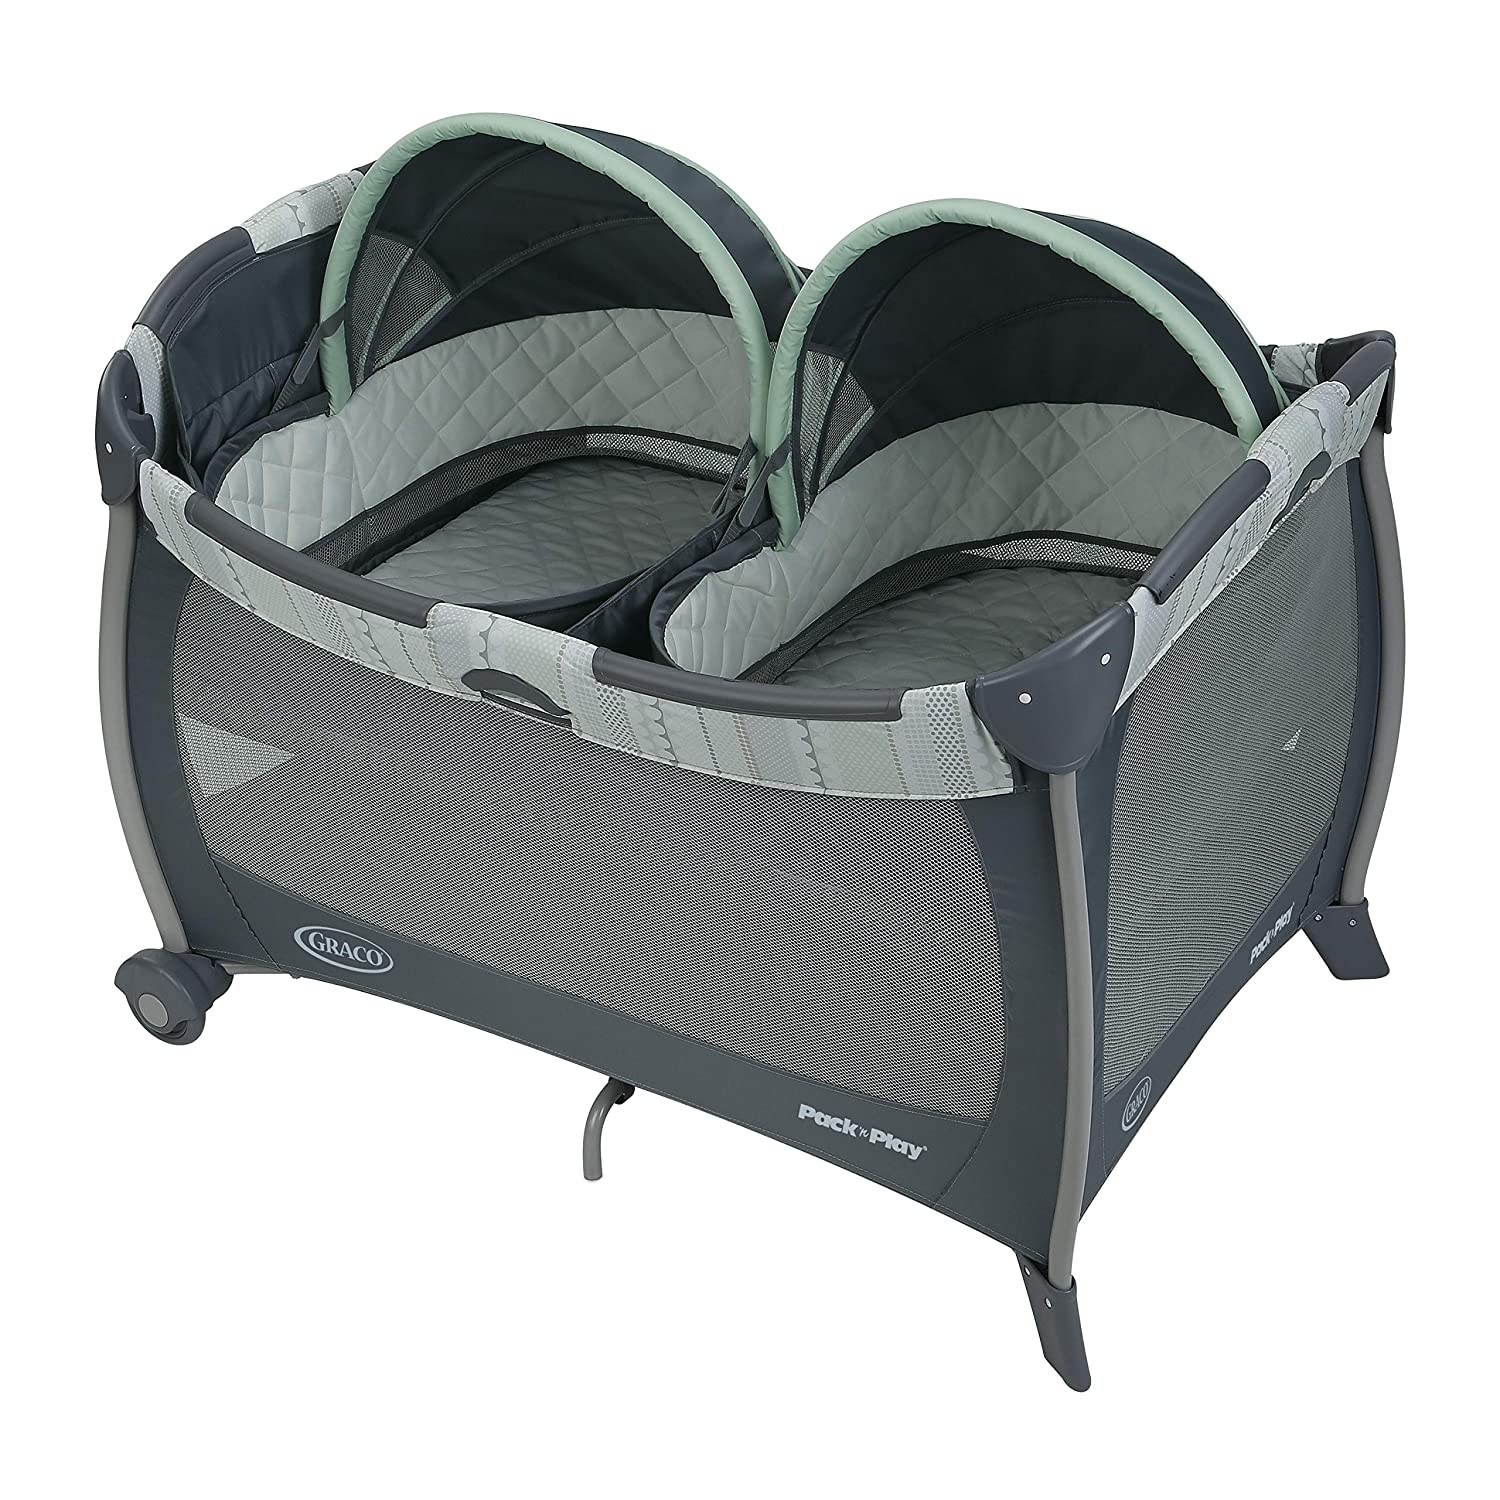 Graco Pack 'n Play Playard with Bassinet for Twins, Mason